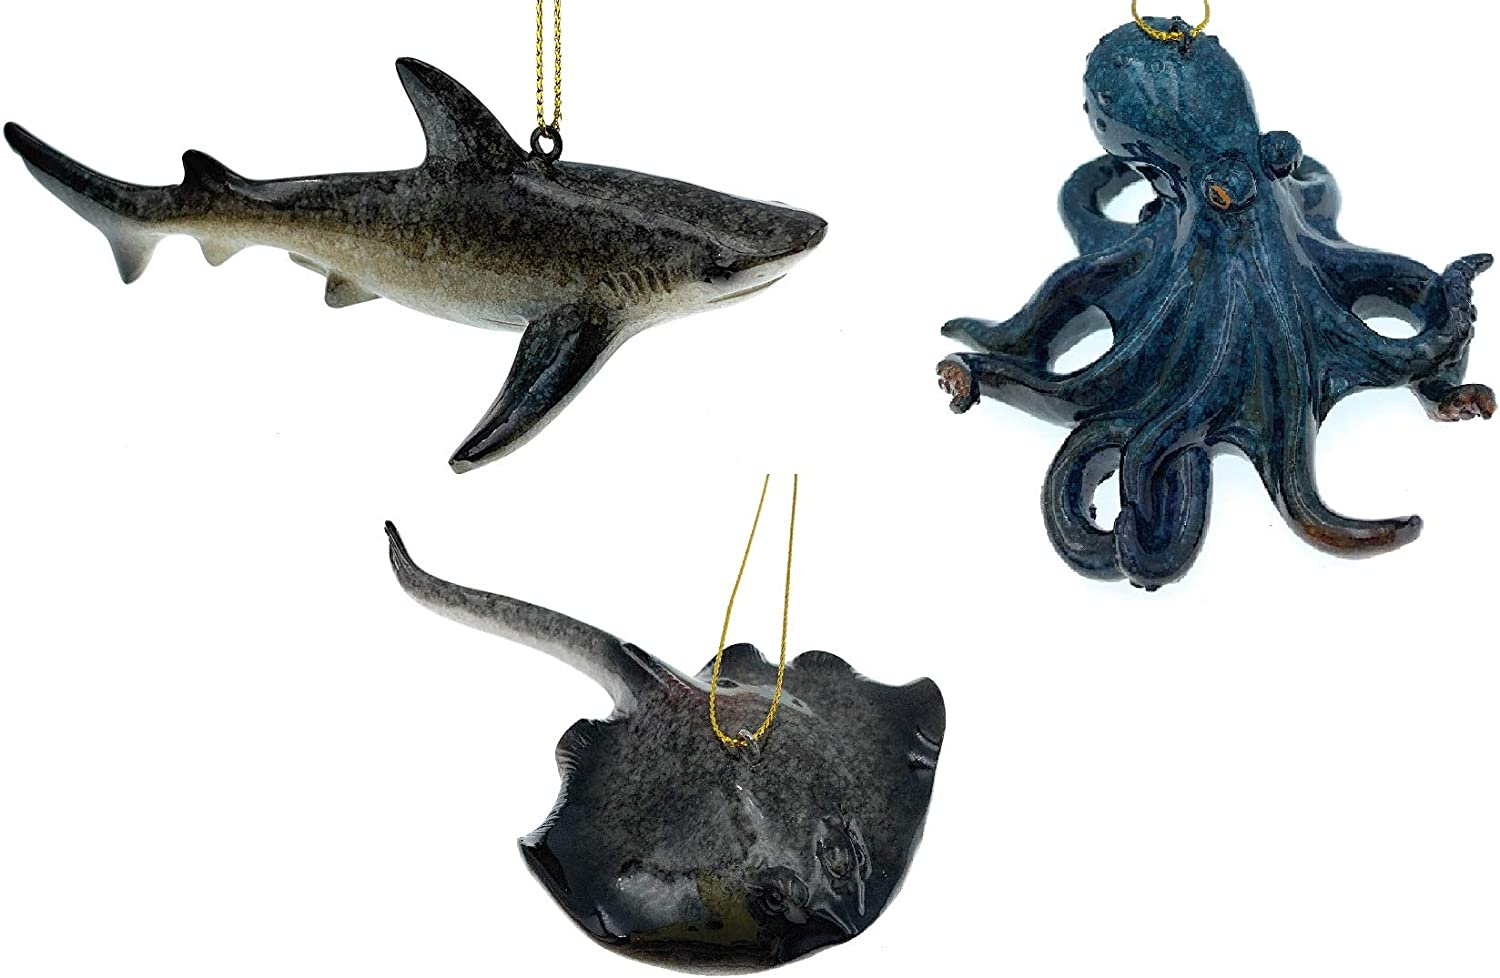 Globe Imports - Nautical Sealife Christmas Ornaments Bundle - 1 Octopus 1 Shark and 1 Stingray Hanging Ornaments